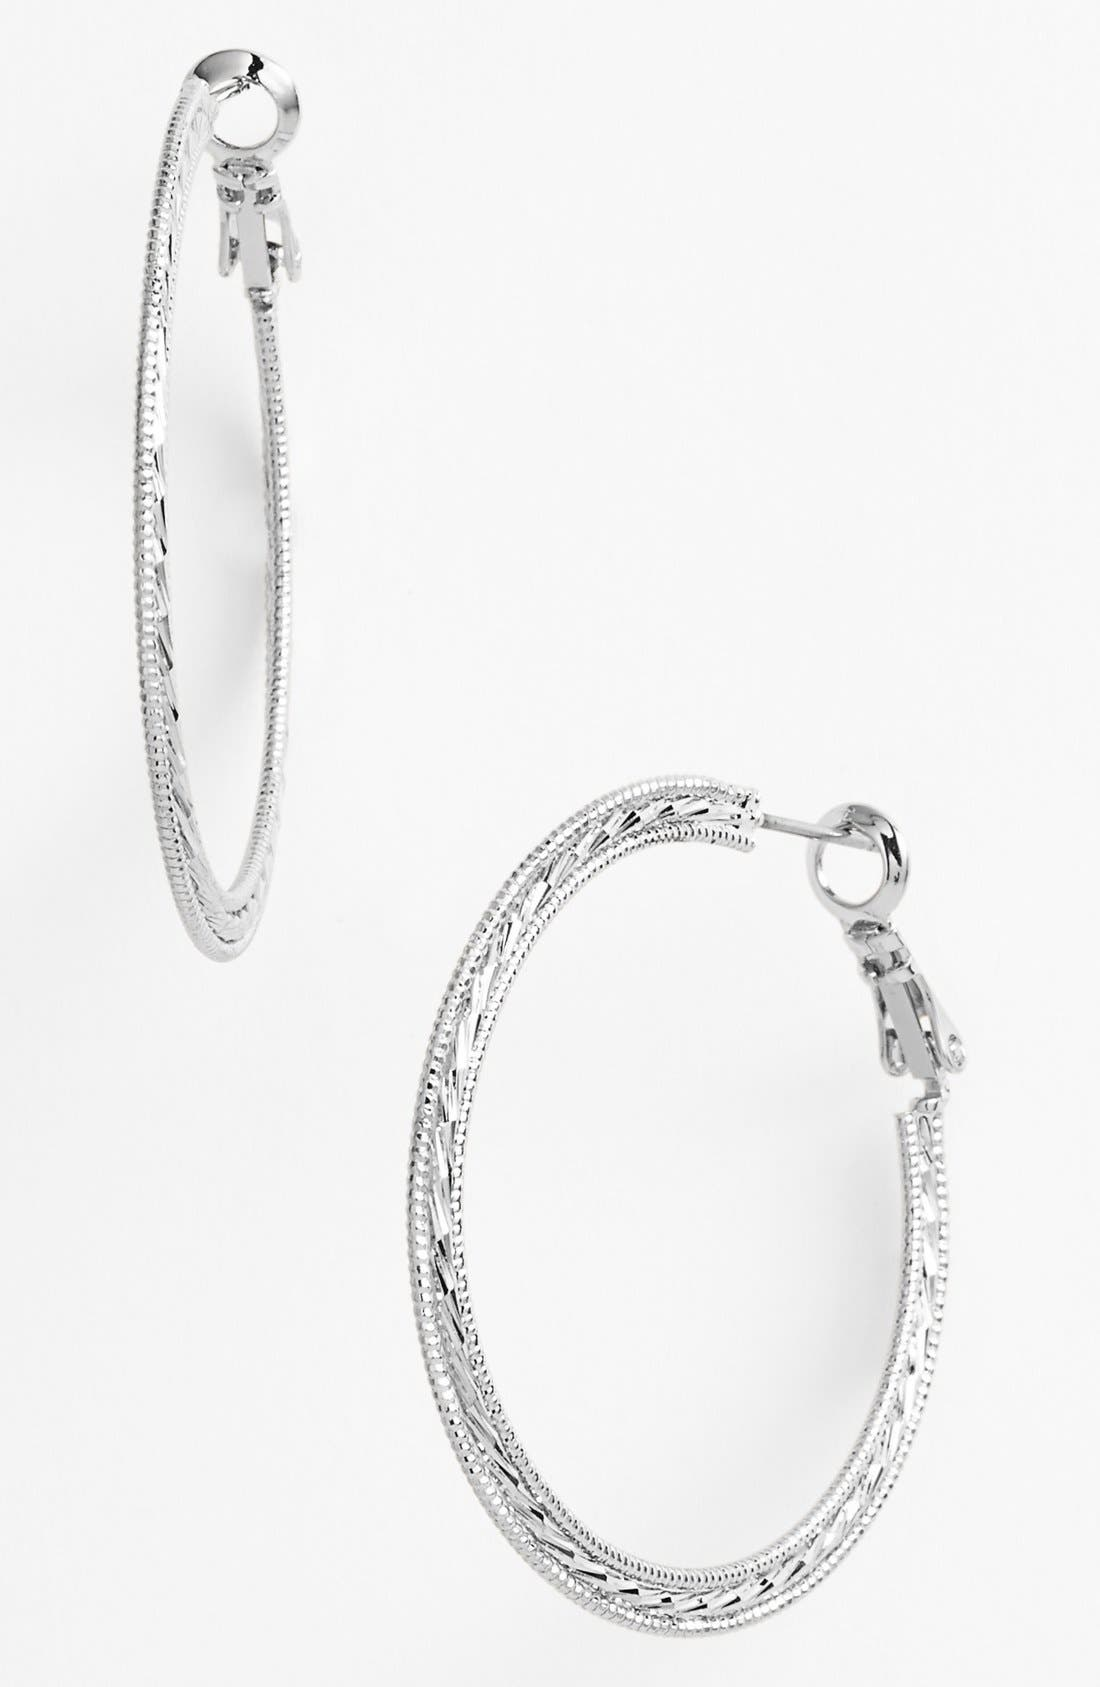 Main Image - Nordstrom Textured Hoop Earrings